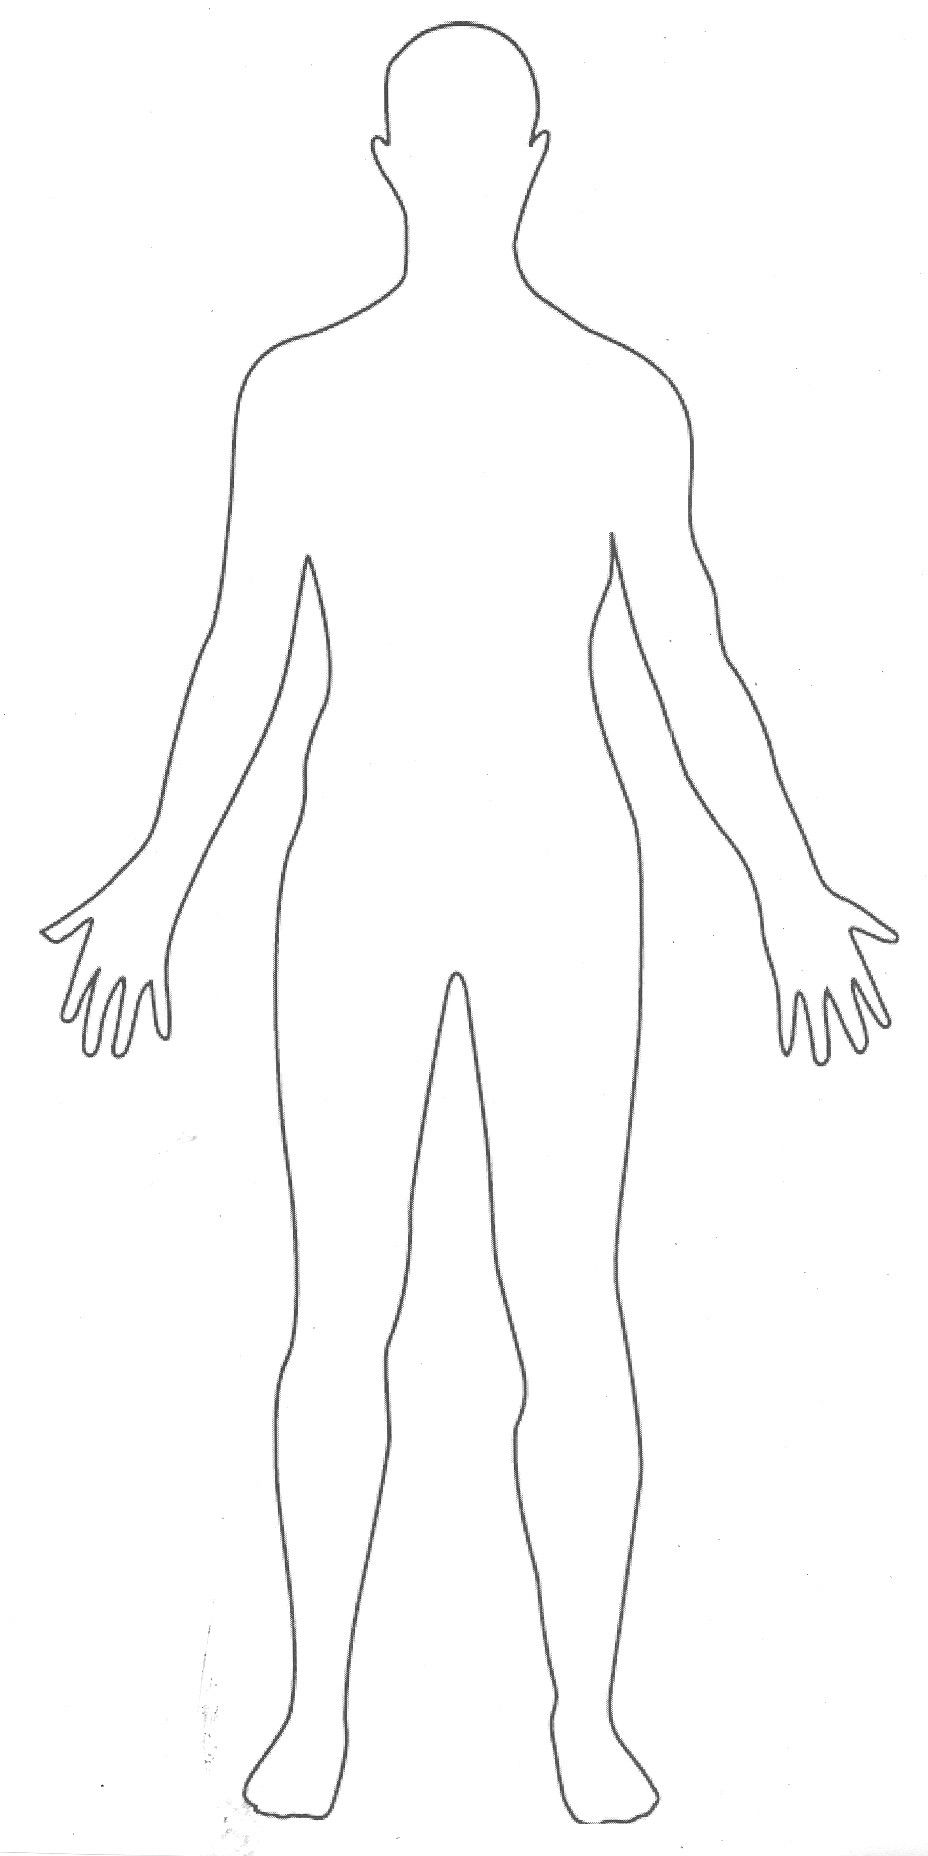 outline of the human body